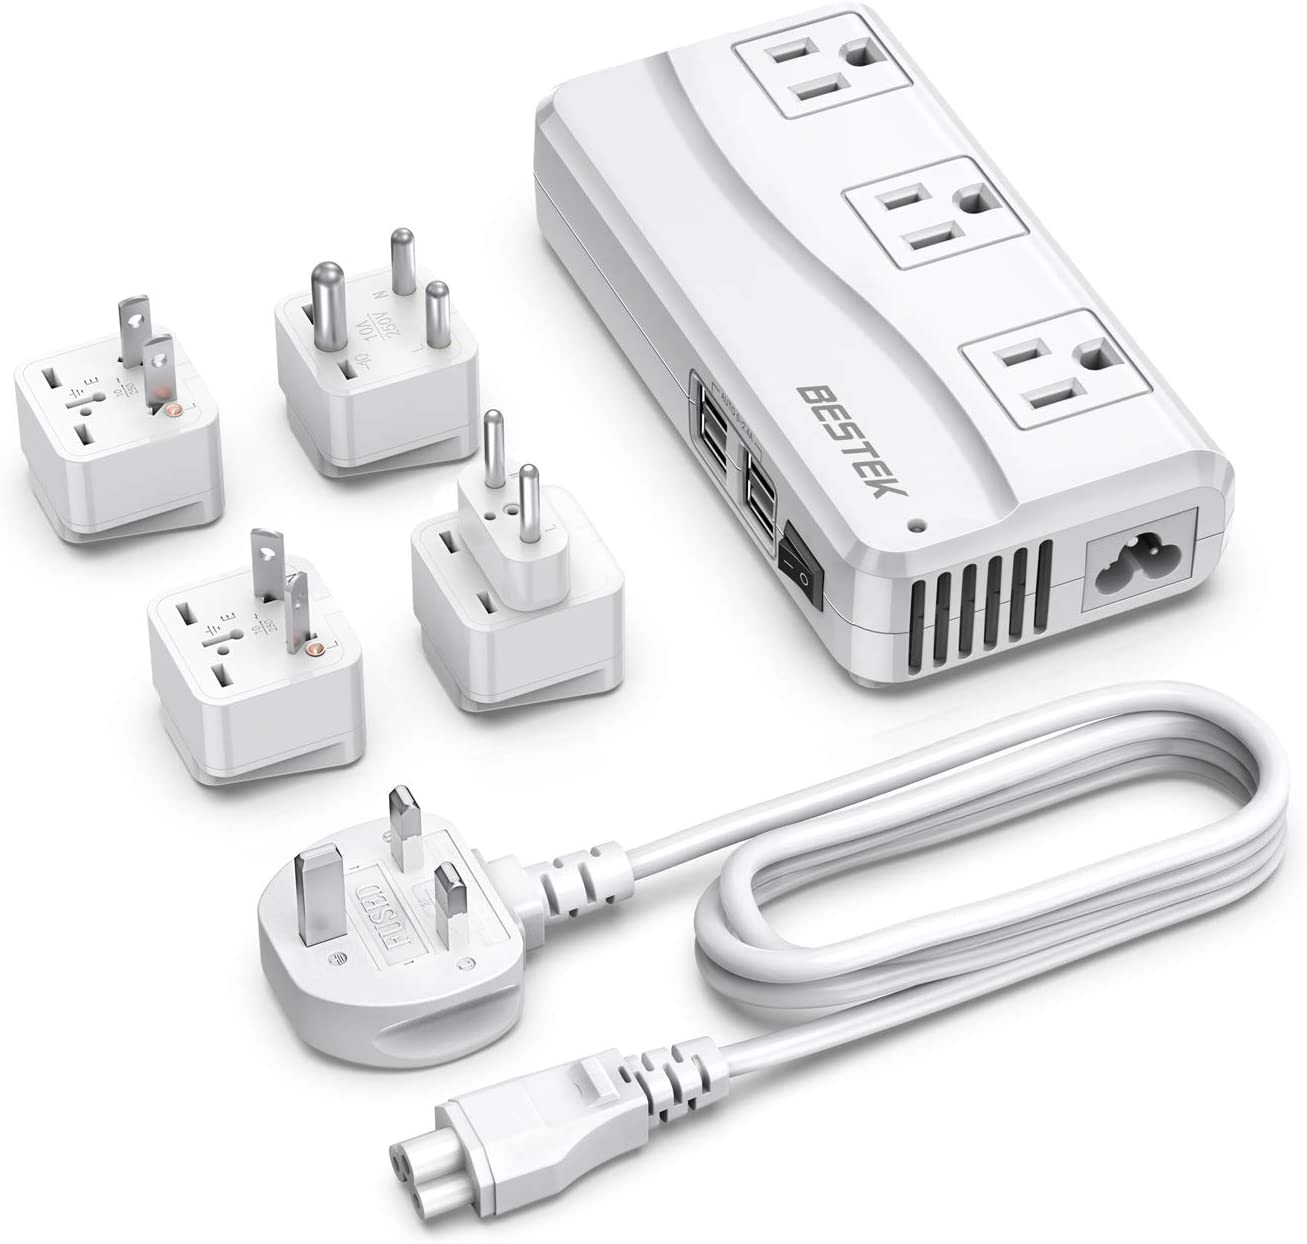 BESTEK Travel Adapter with UK Plug Universal 100-220V to 110V Voltage Converter 250W with 6A 4-Port USB Charging 3 AC Sockets and EU/US/India/AU Adapter for Worldwide use (White)